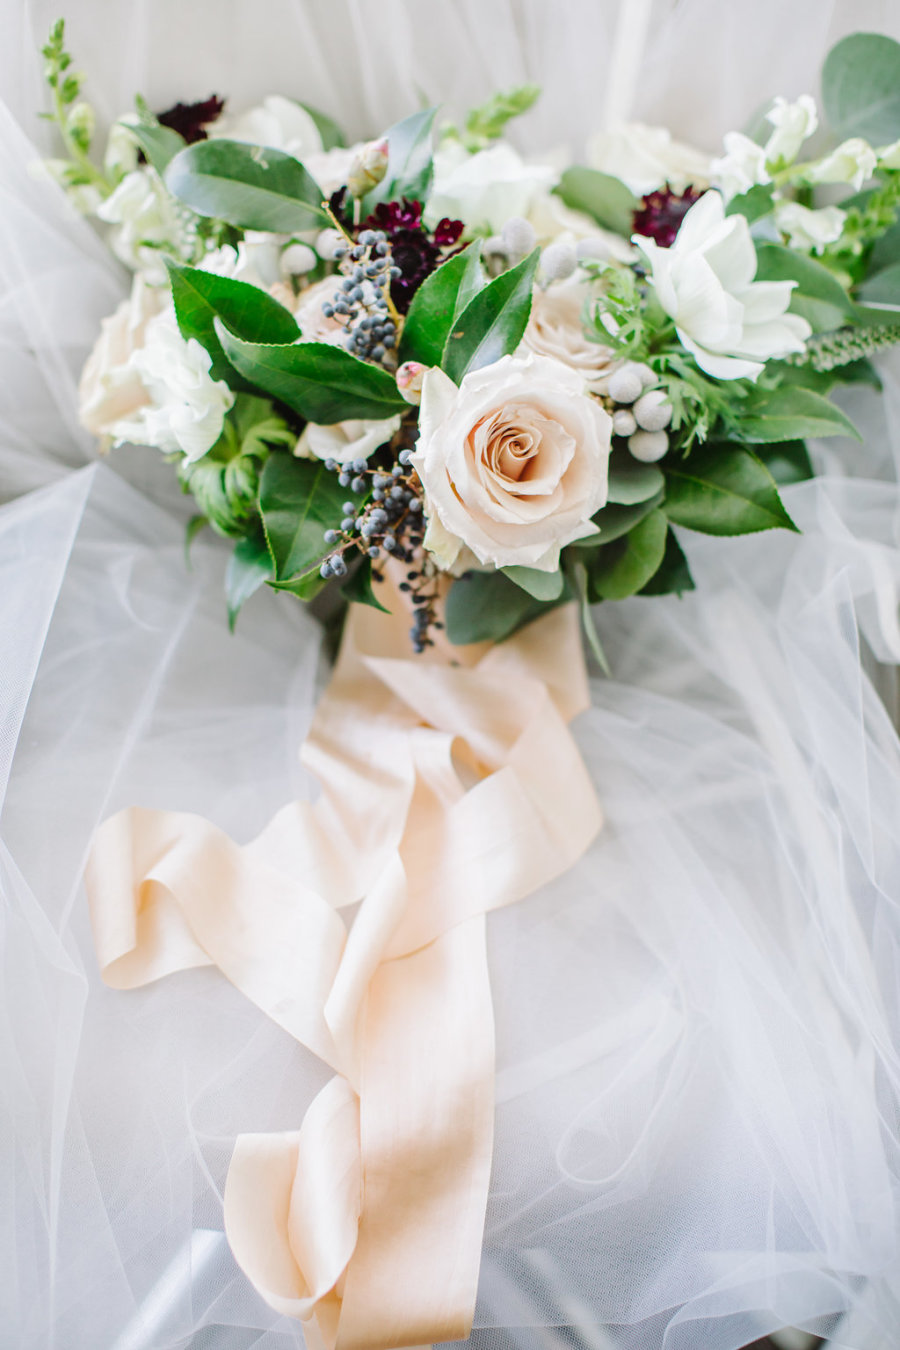 Sophie felts blossom and vine wedding florist washington dc